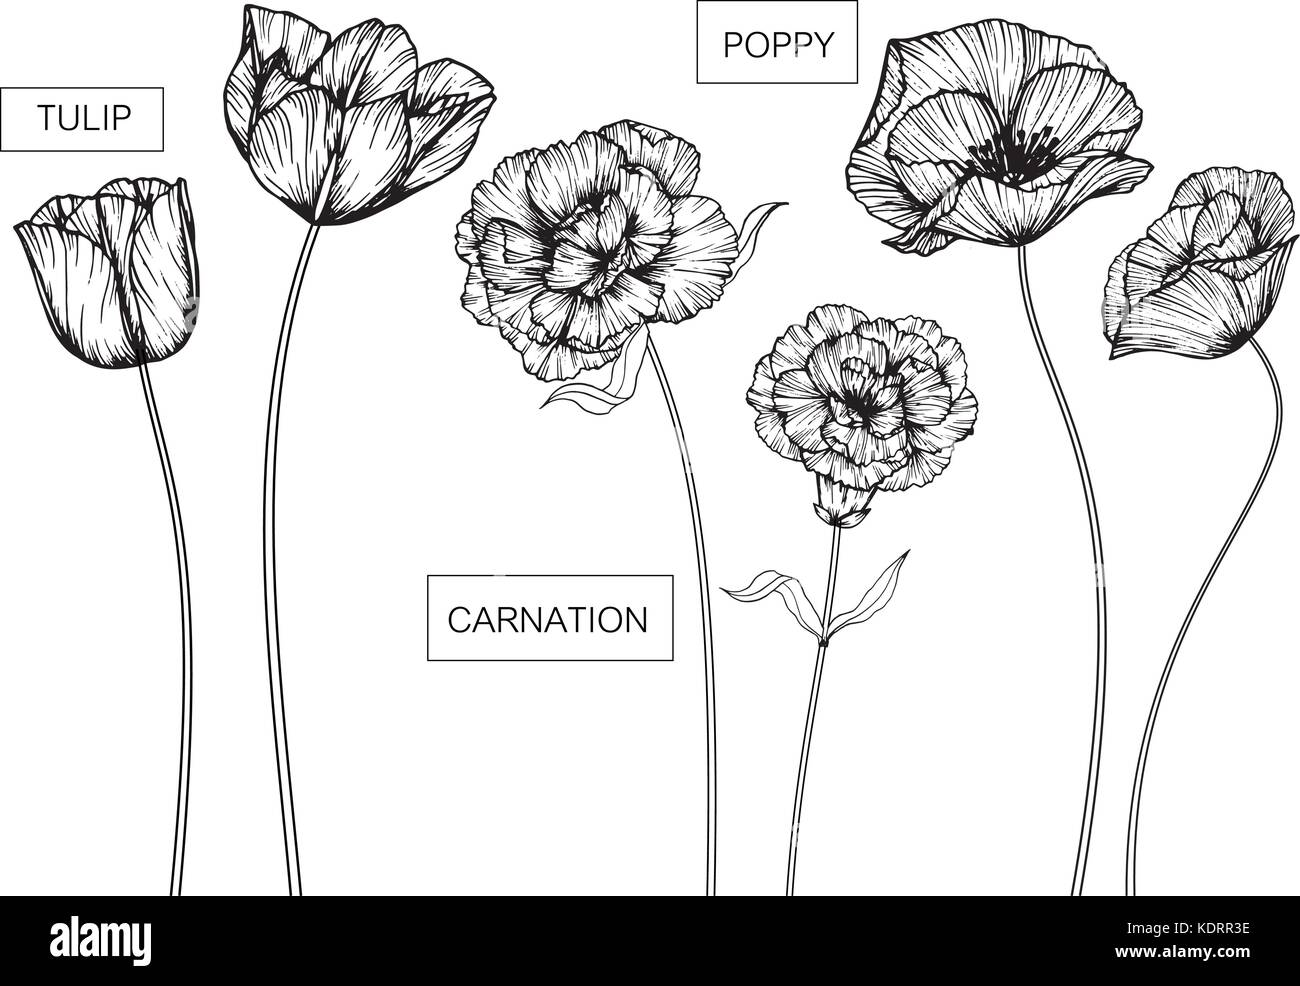 Tulip Carnation And Poppy Flowers Drawing And Sketch With Line Art